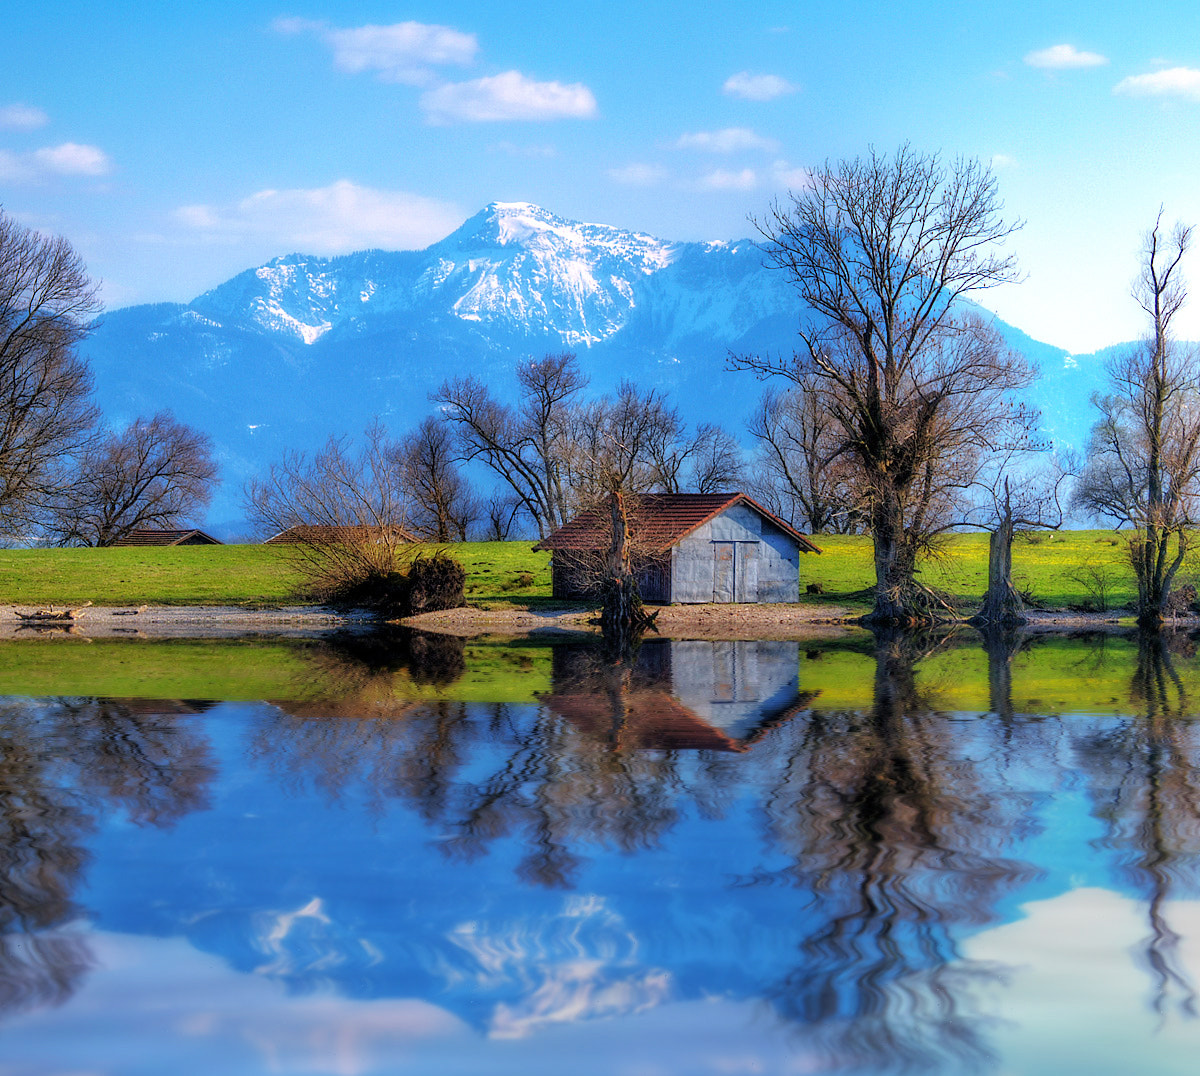 Photograph Chiemsee by Steve Daggar on 500px